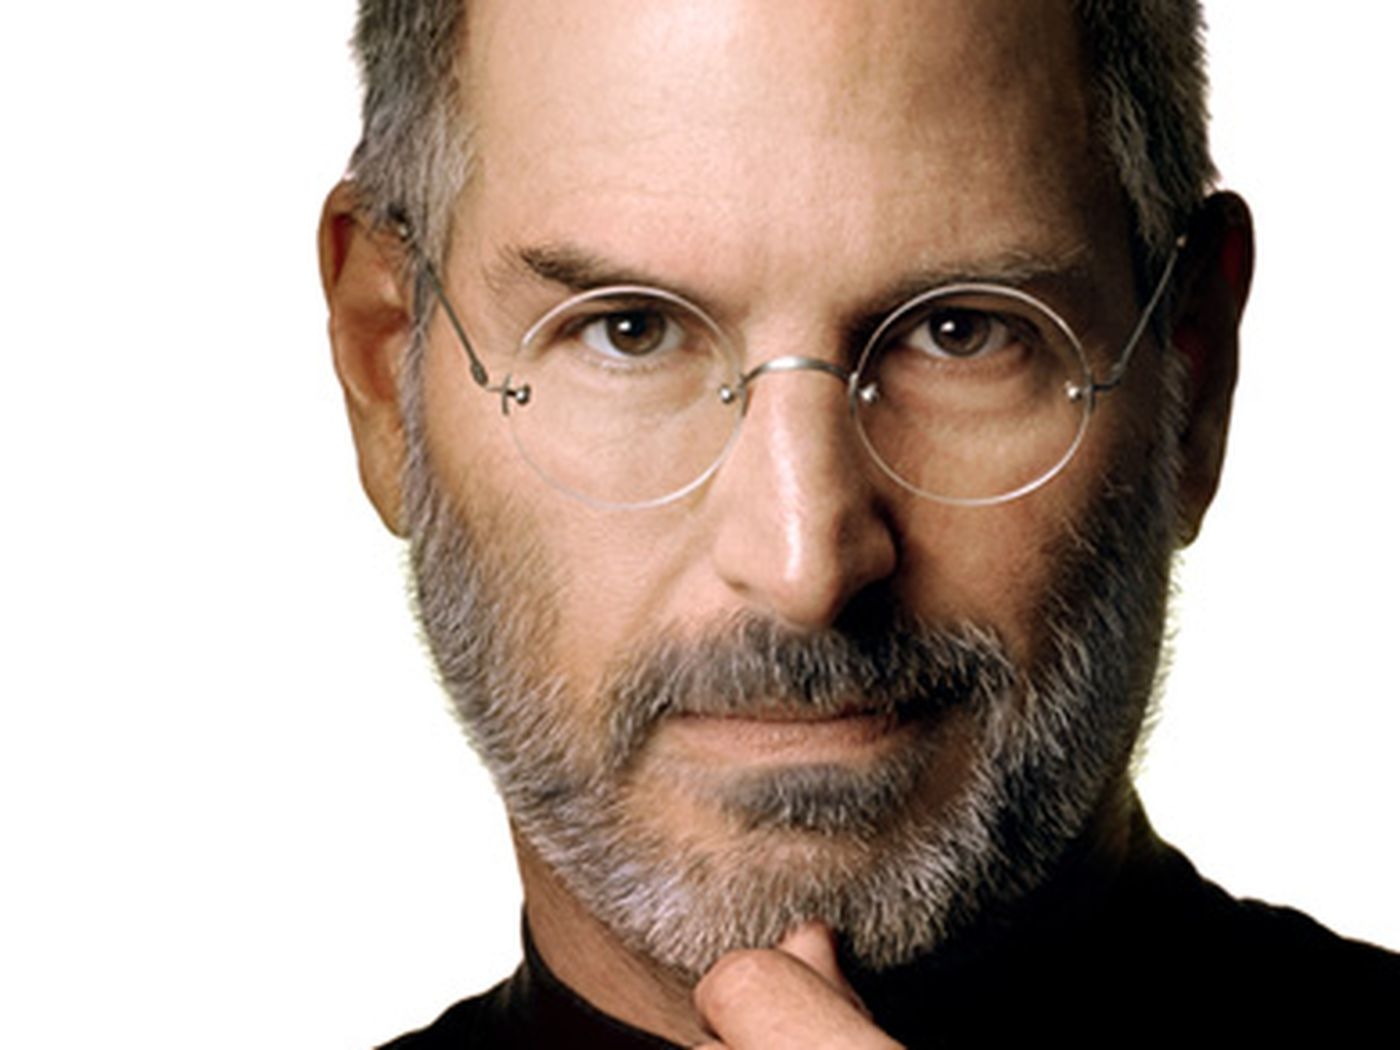 Steve Jobs would have used PushPress Gym Management Software if he owned a gym